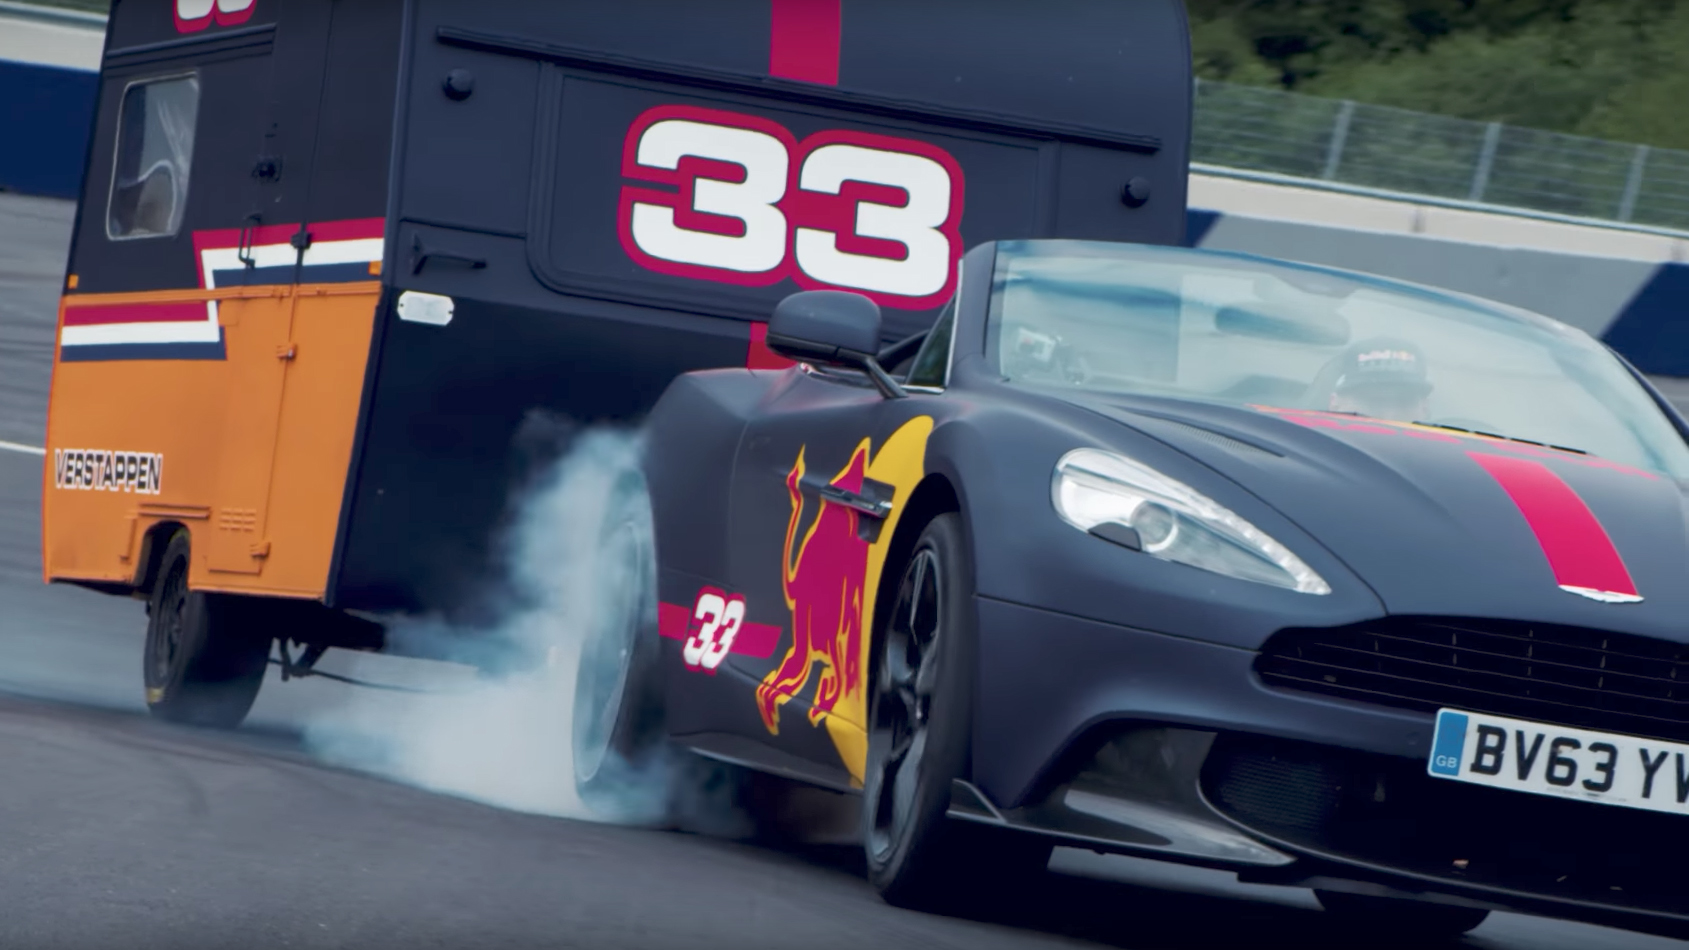 Aston Martin Vanquish Red Bull and caravan